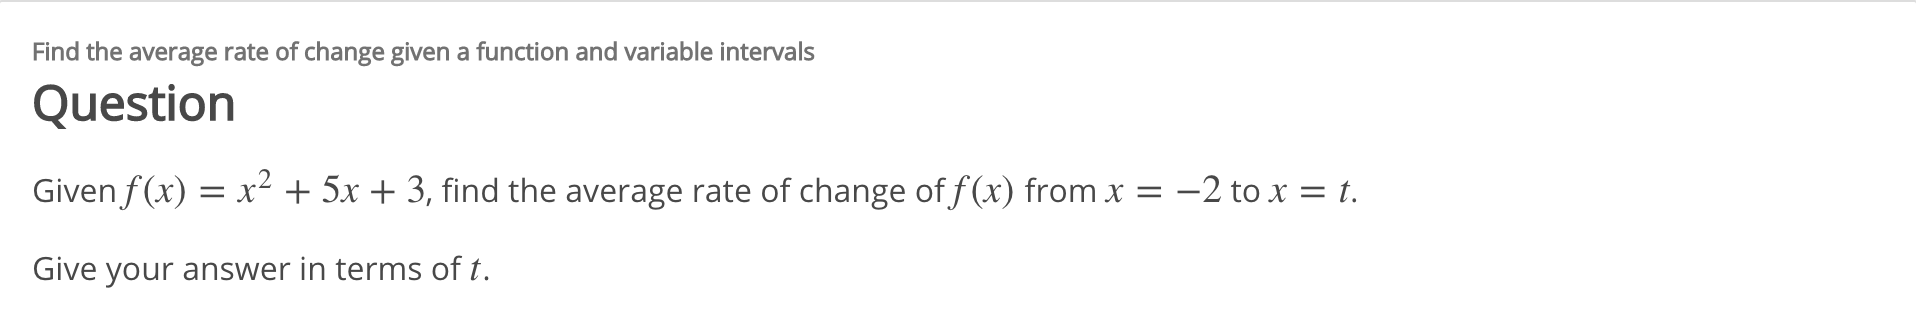 Find the average rate of change given a function and variable intervals Question Given f(x) = x² + 5x + 3, find the average rate of change of f (x) from x = –2 to x = t. Give your answer in terms of t.